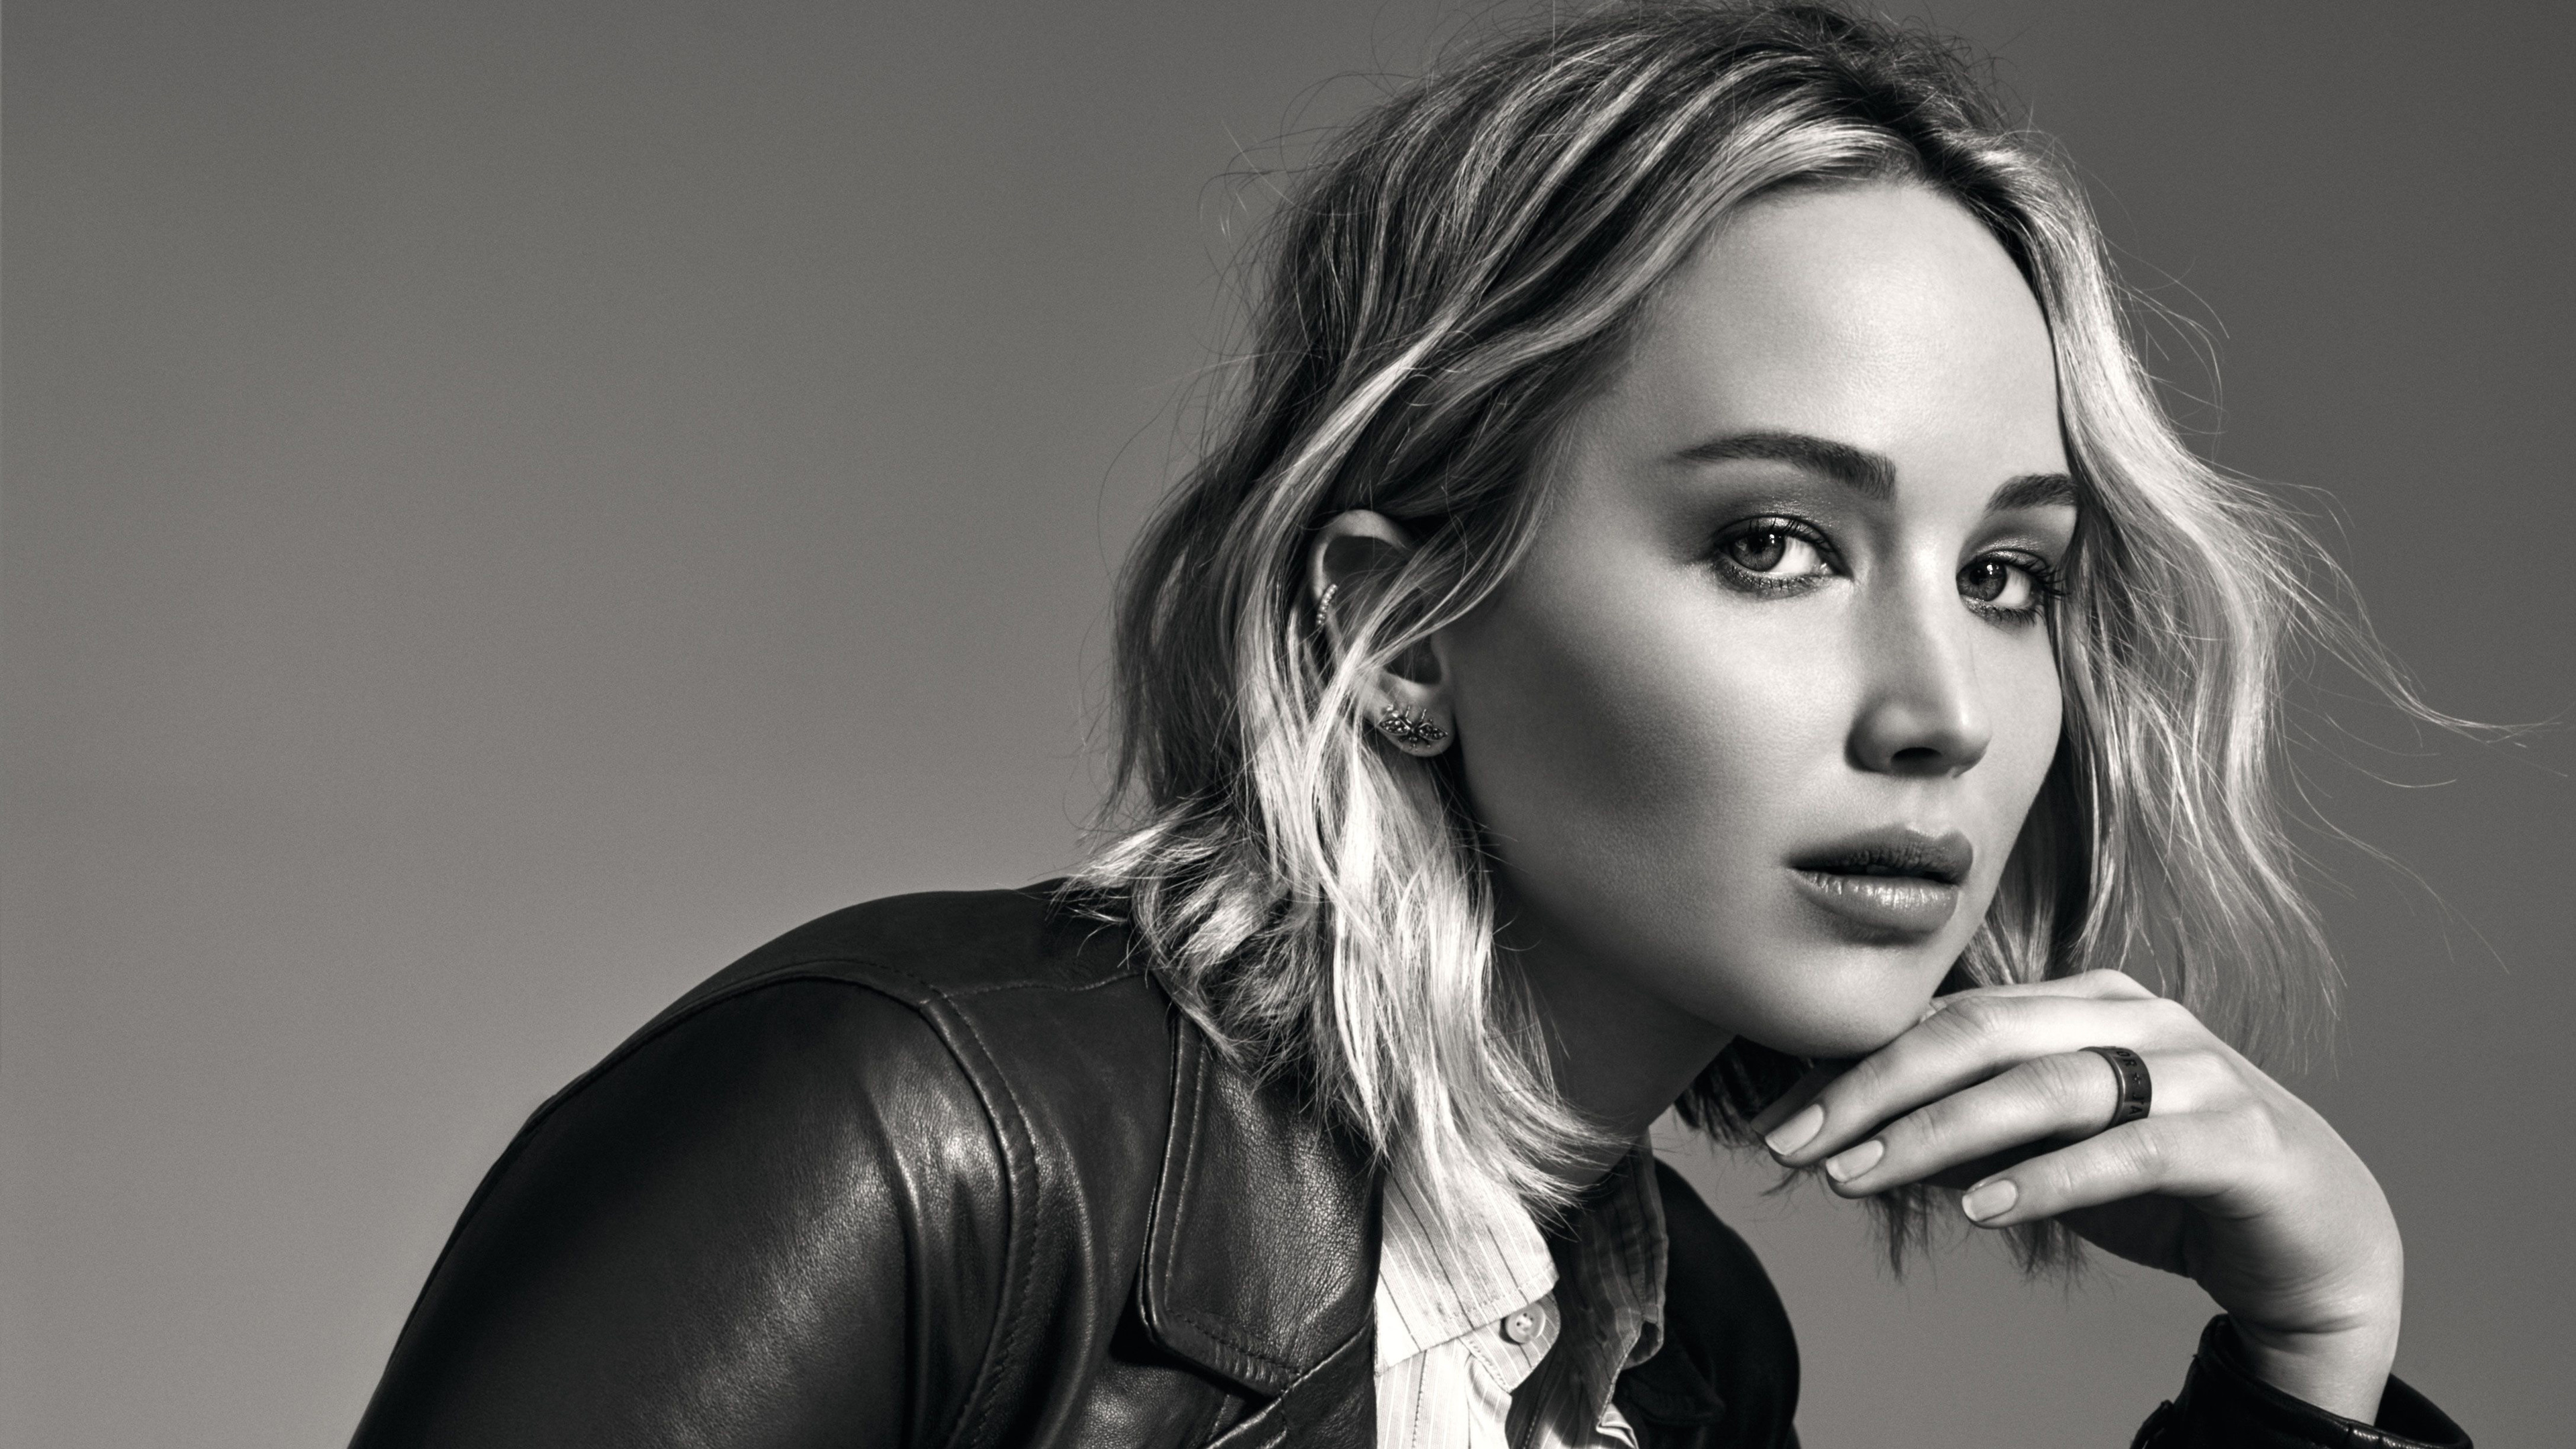 jennifer lawrence monochrome 4k 1536951931 - Jennifer Lawrence Monochrome 4k - monochrome wallpapers, jennifer lawrence wallpapers, hd-wallpapers, girls wallpapers, celebrities wallpapers, black and white wallpapers, 4k-wallpapers